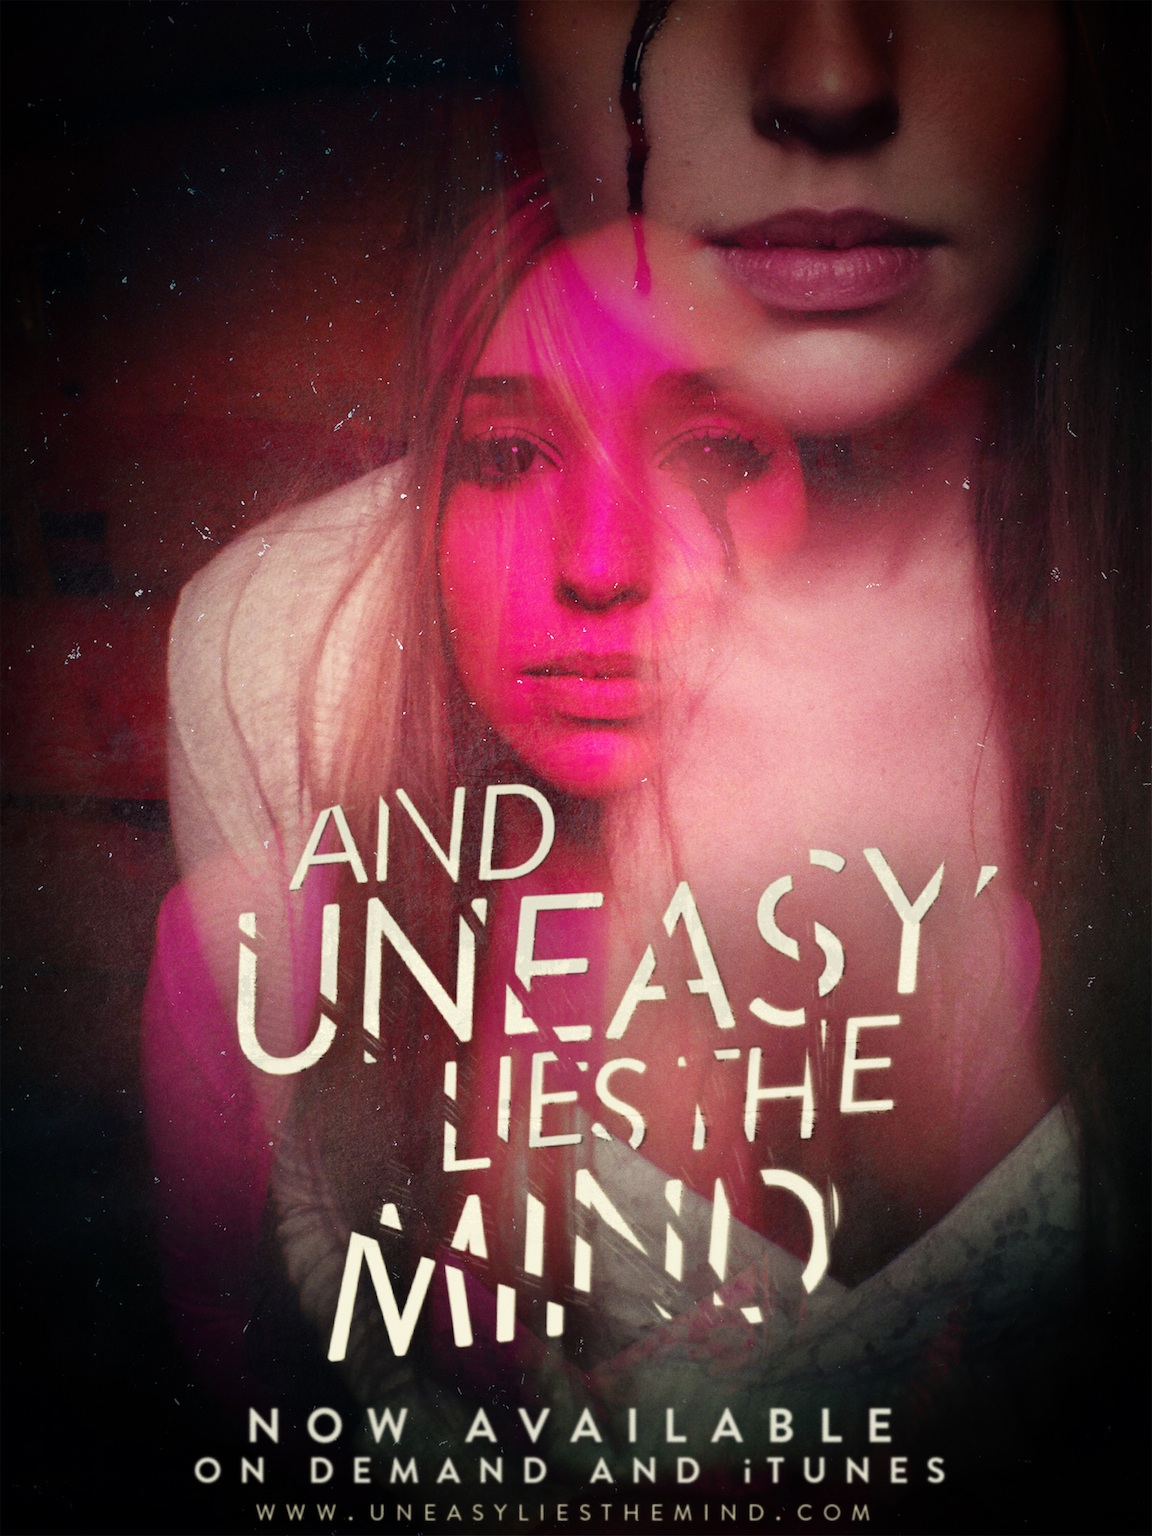 Uneasy Lies The Mind - J'aime Character Poster.jpg